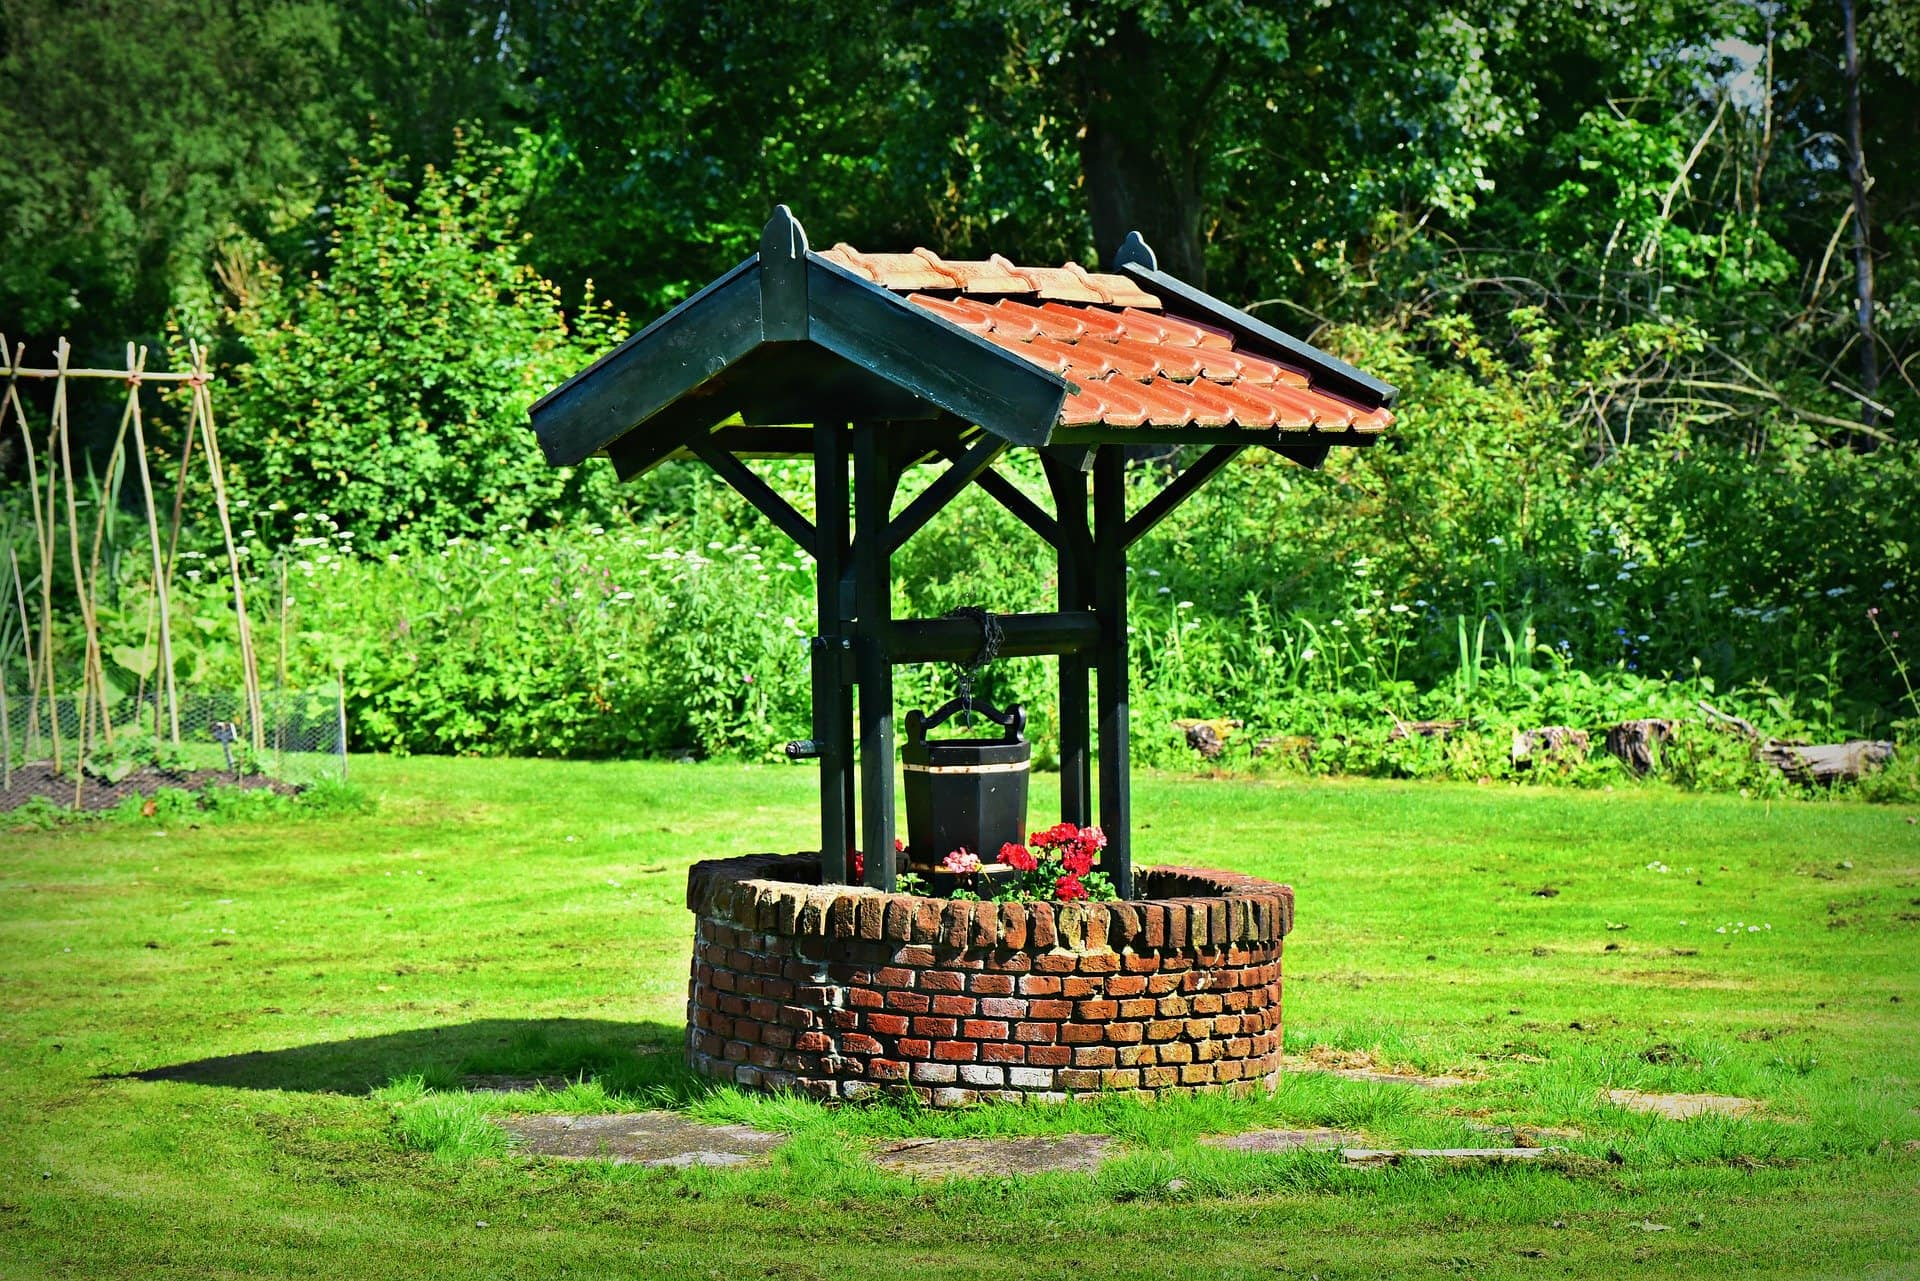 <strong>Build in a Beautiful Wishing Well</strong>